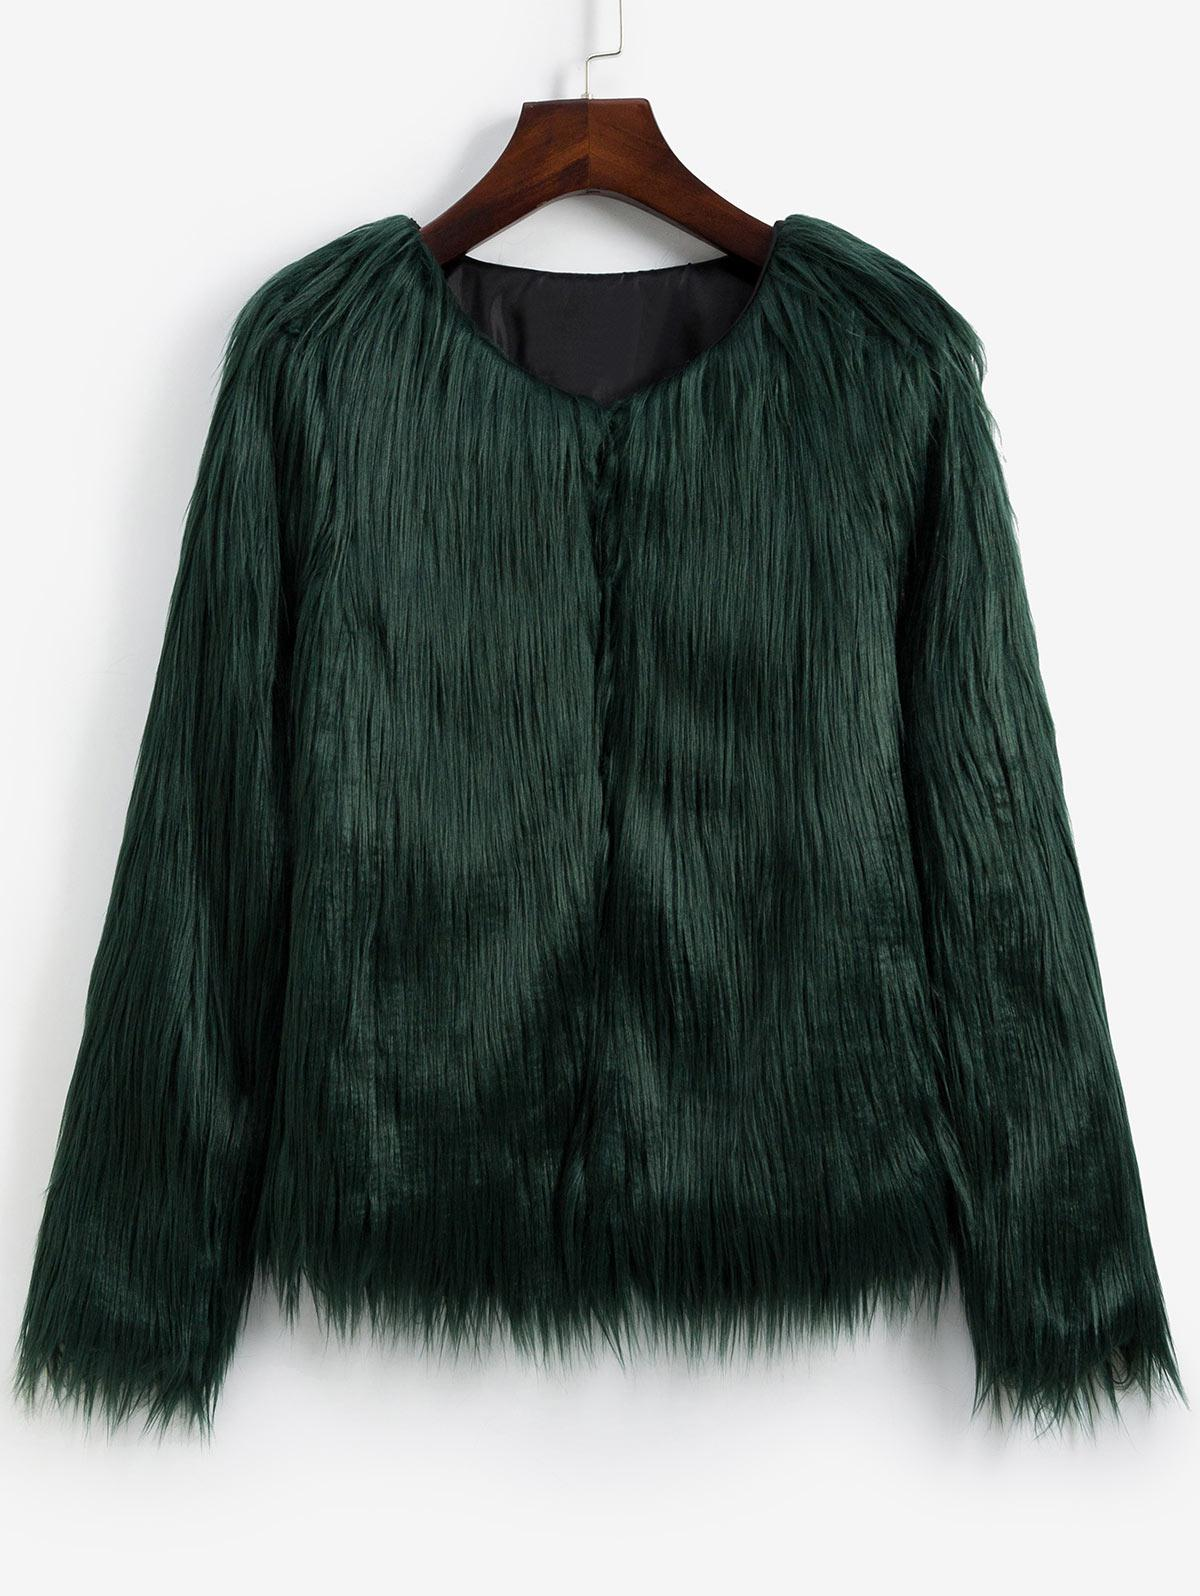 Faux Fur Shaggy Style Plush Fluffy Coat